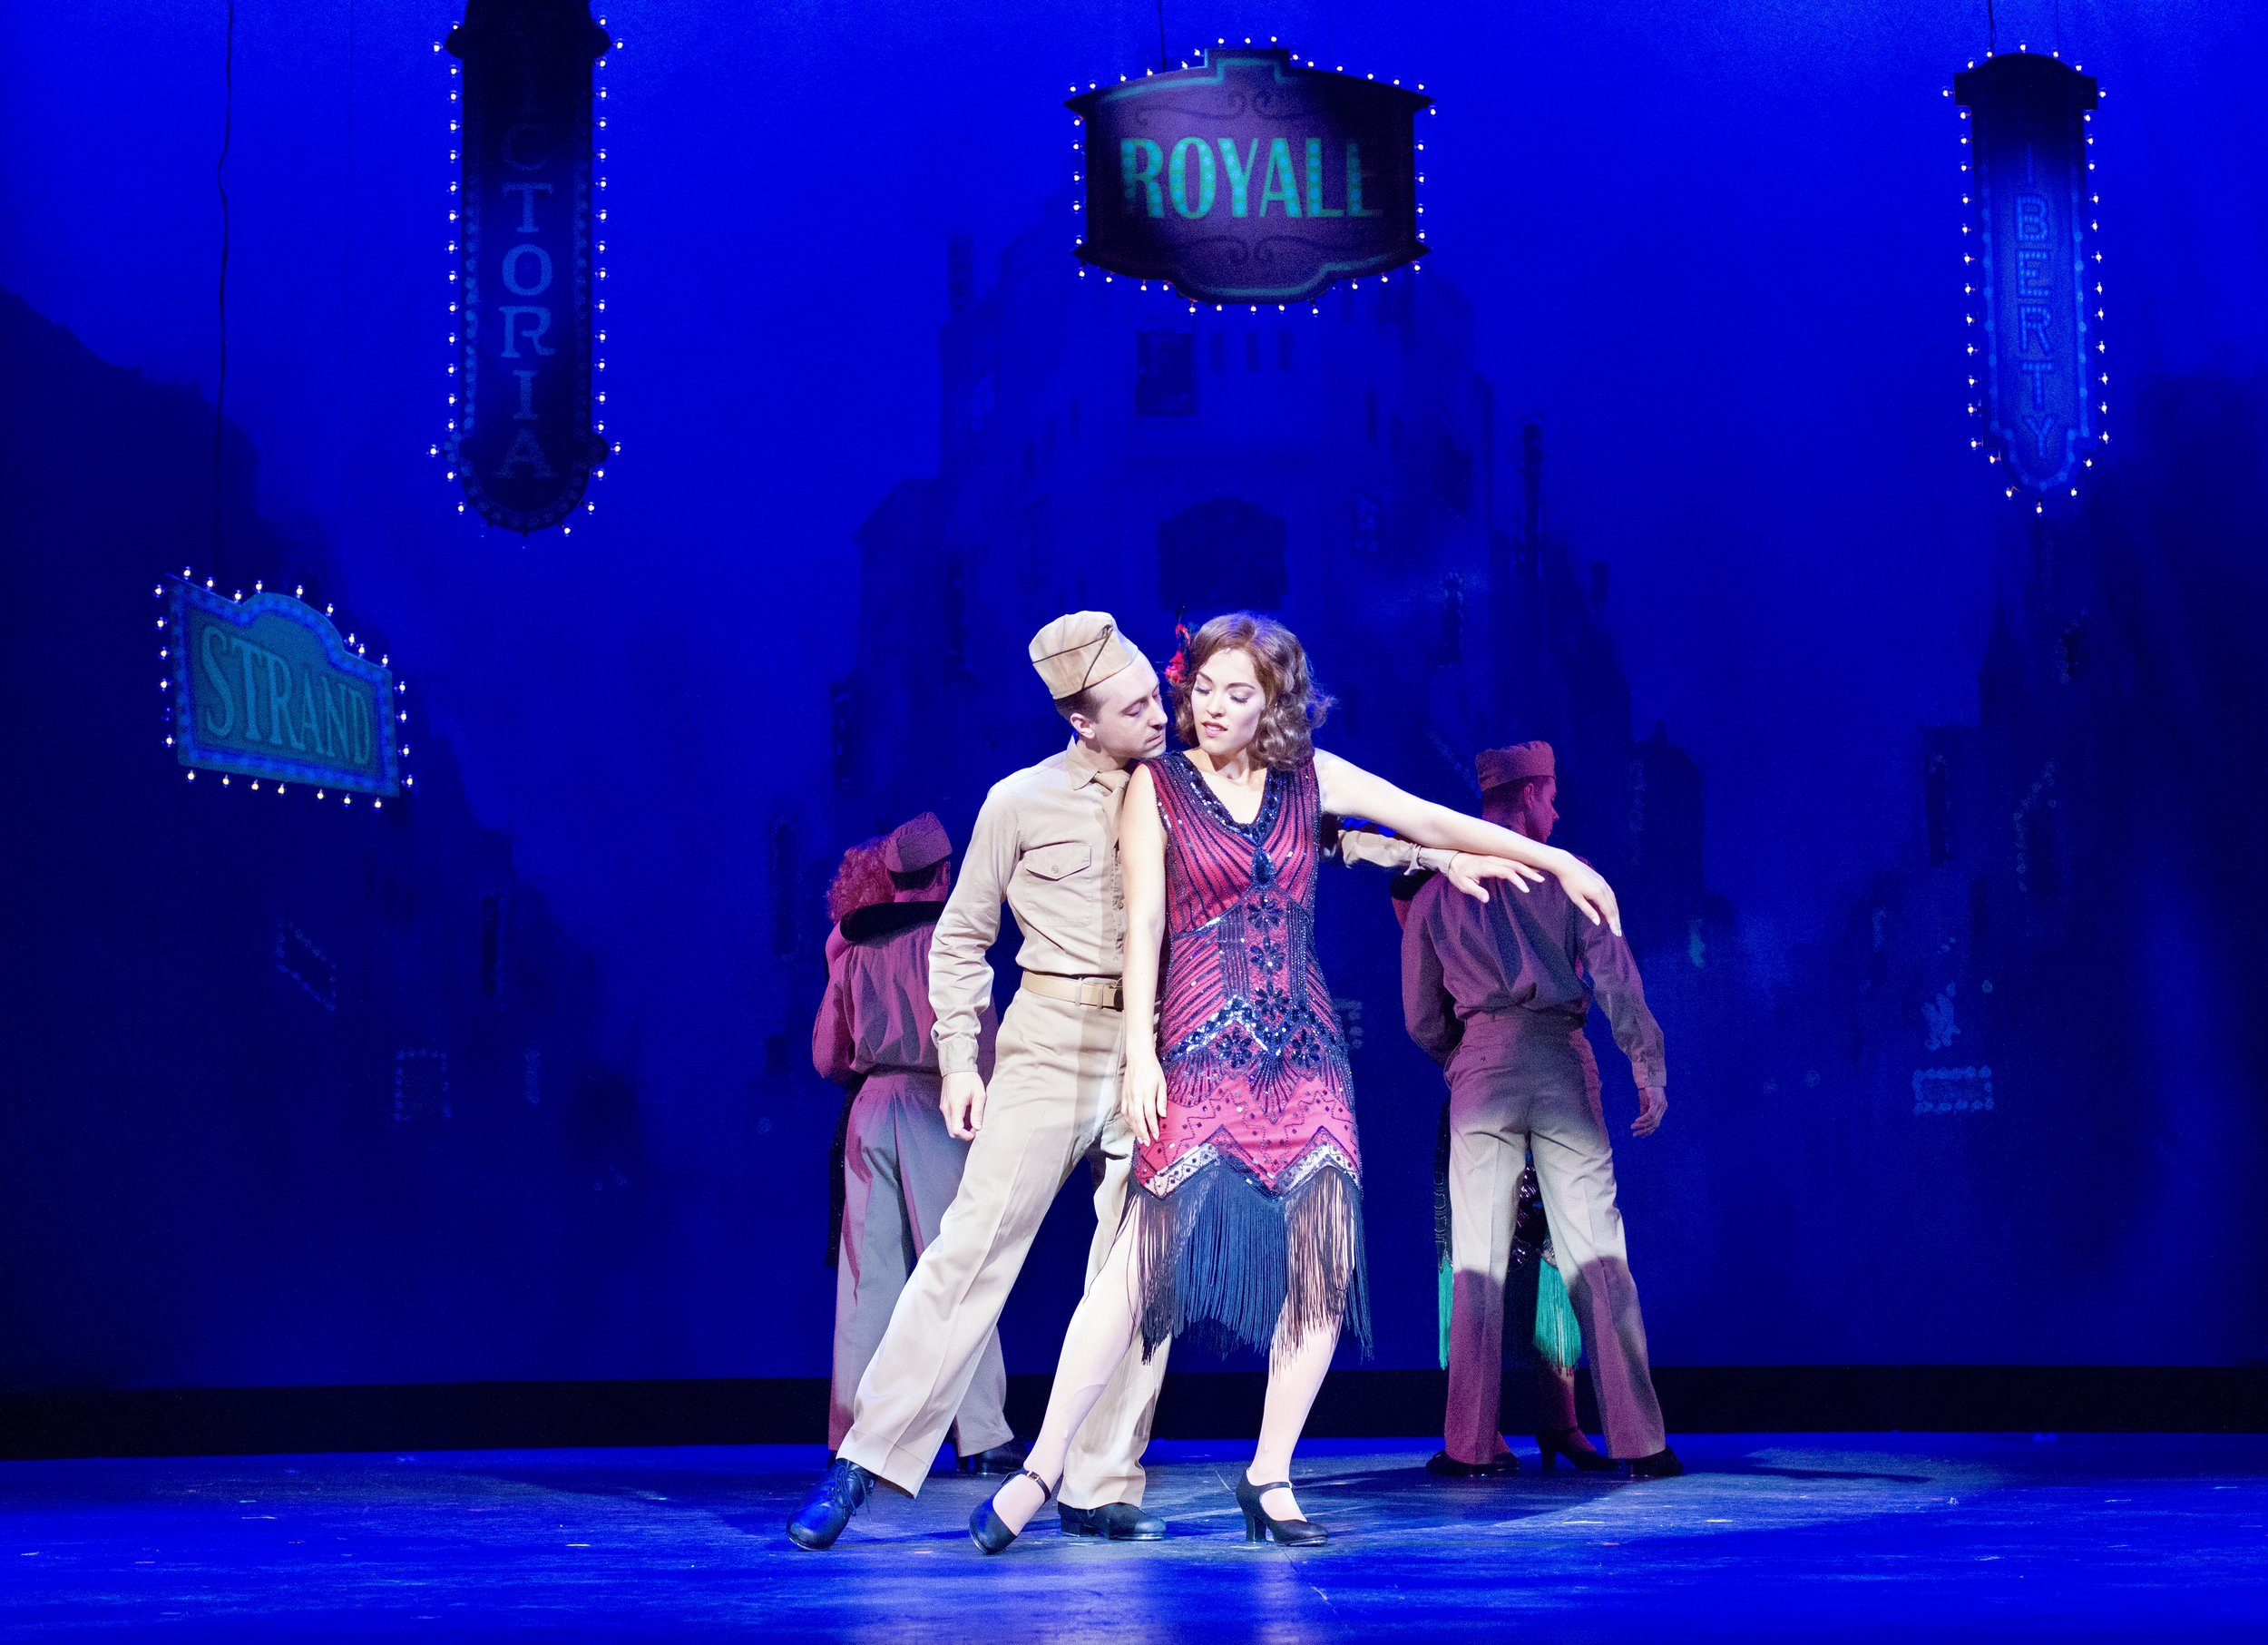 42nd Street Ballet  (Blakely and Tessa Grady)